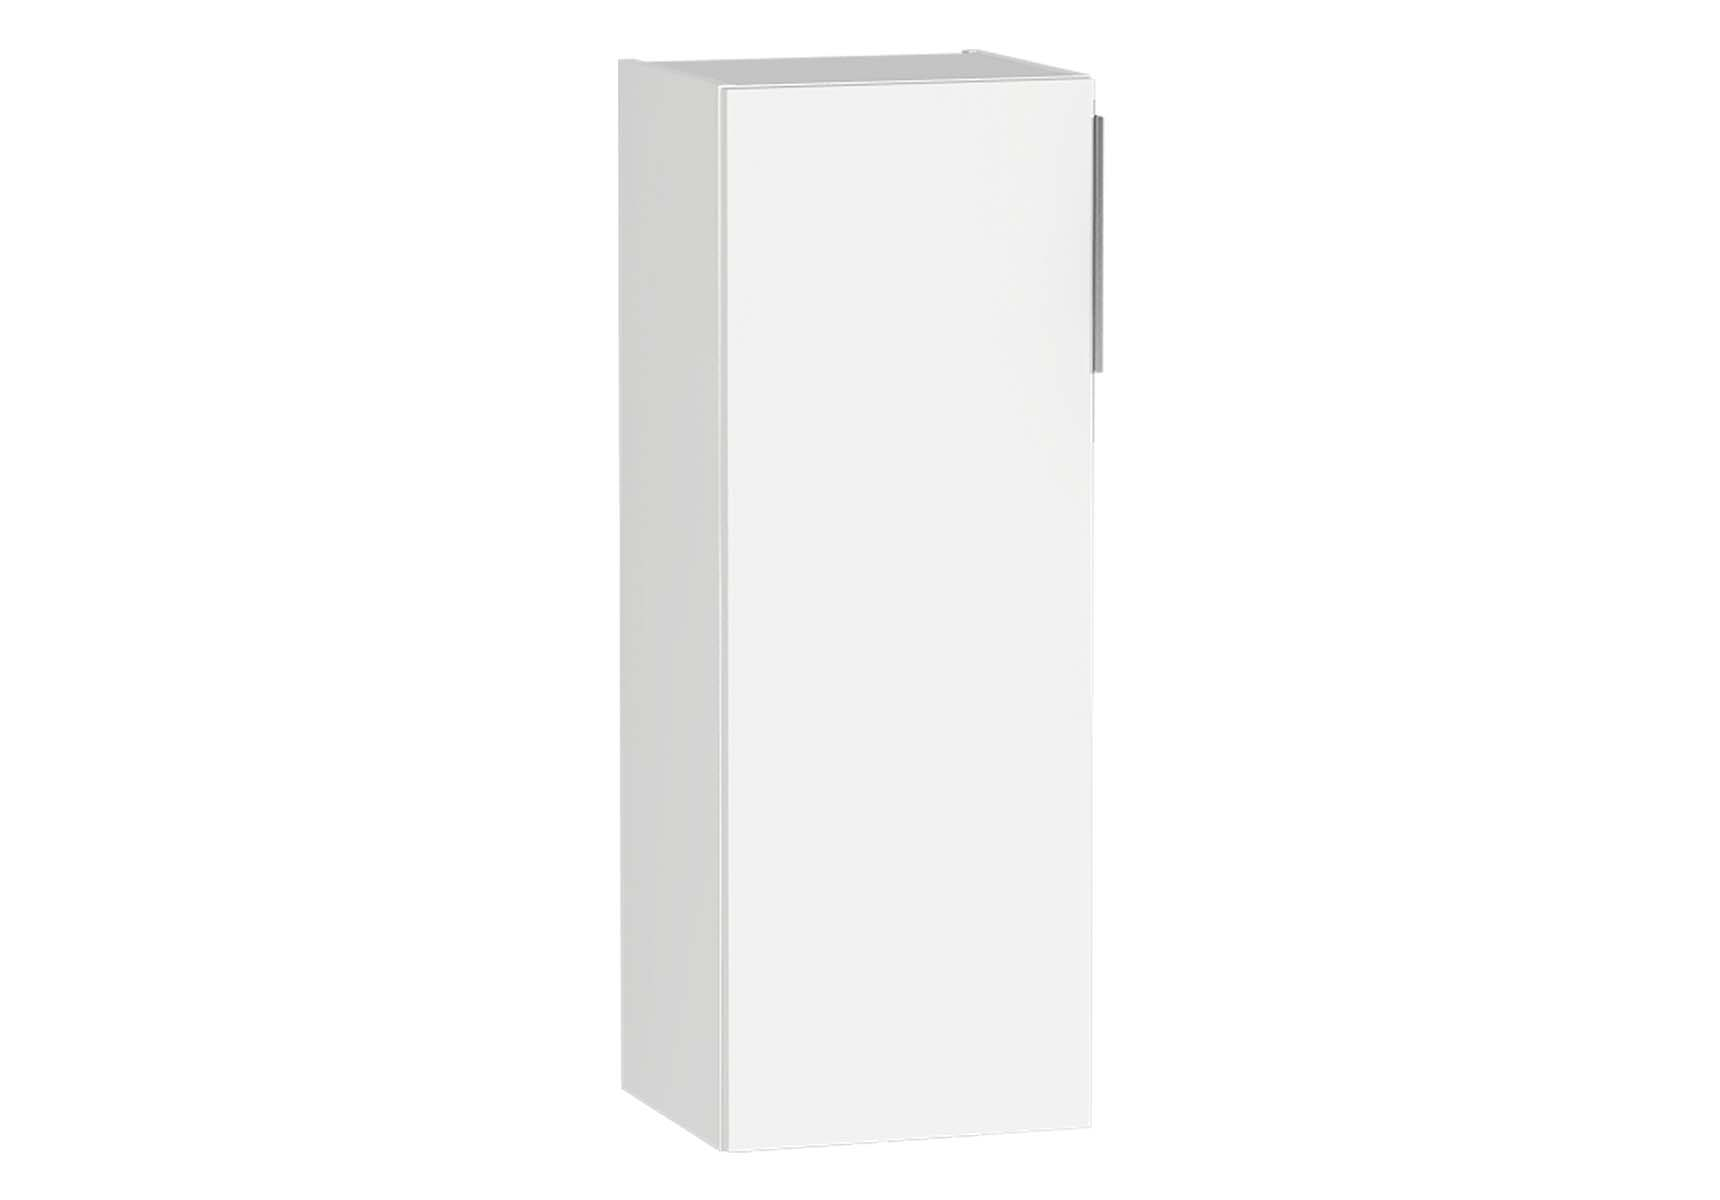 Central Middle Unit, 35 cm, White High Gloss, Left